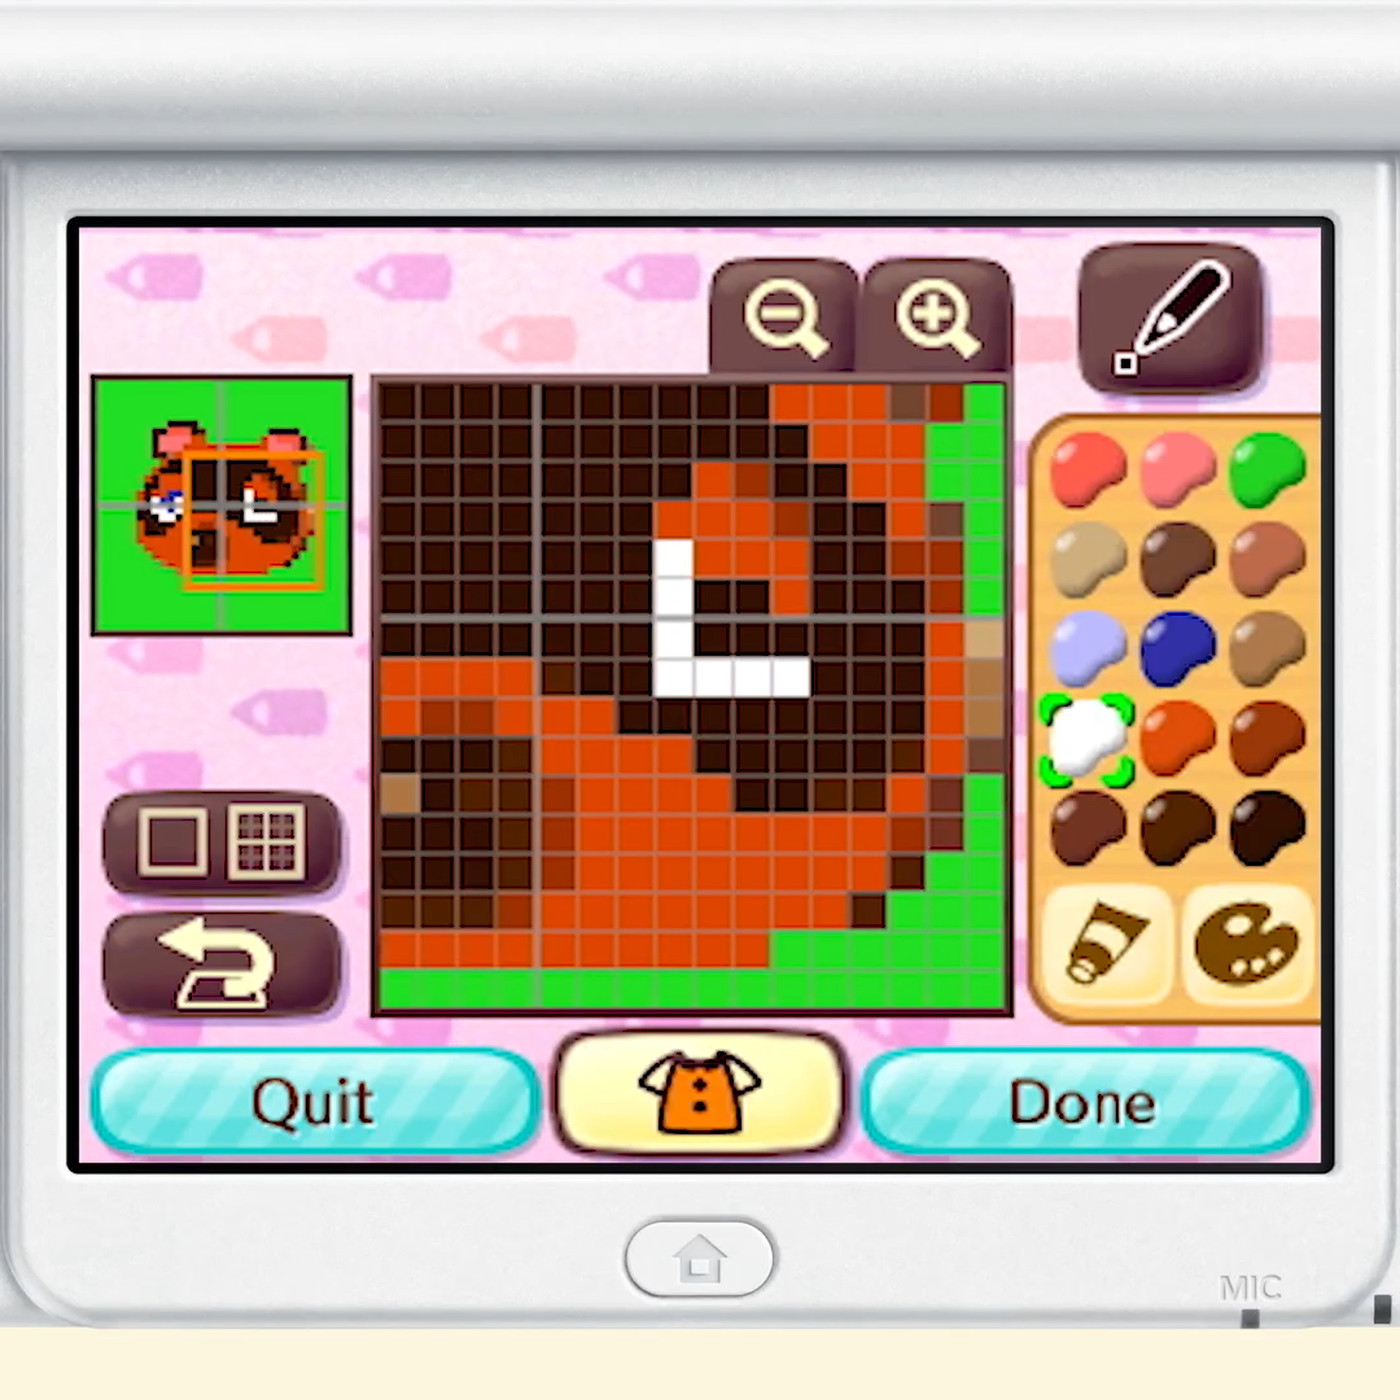 Animal Crossing New Horizons Nooklink App Interacts With Old